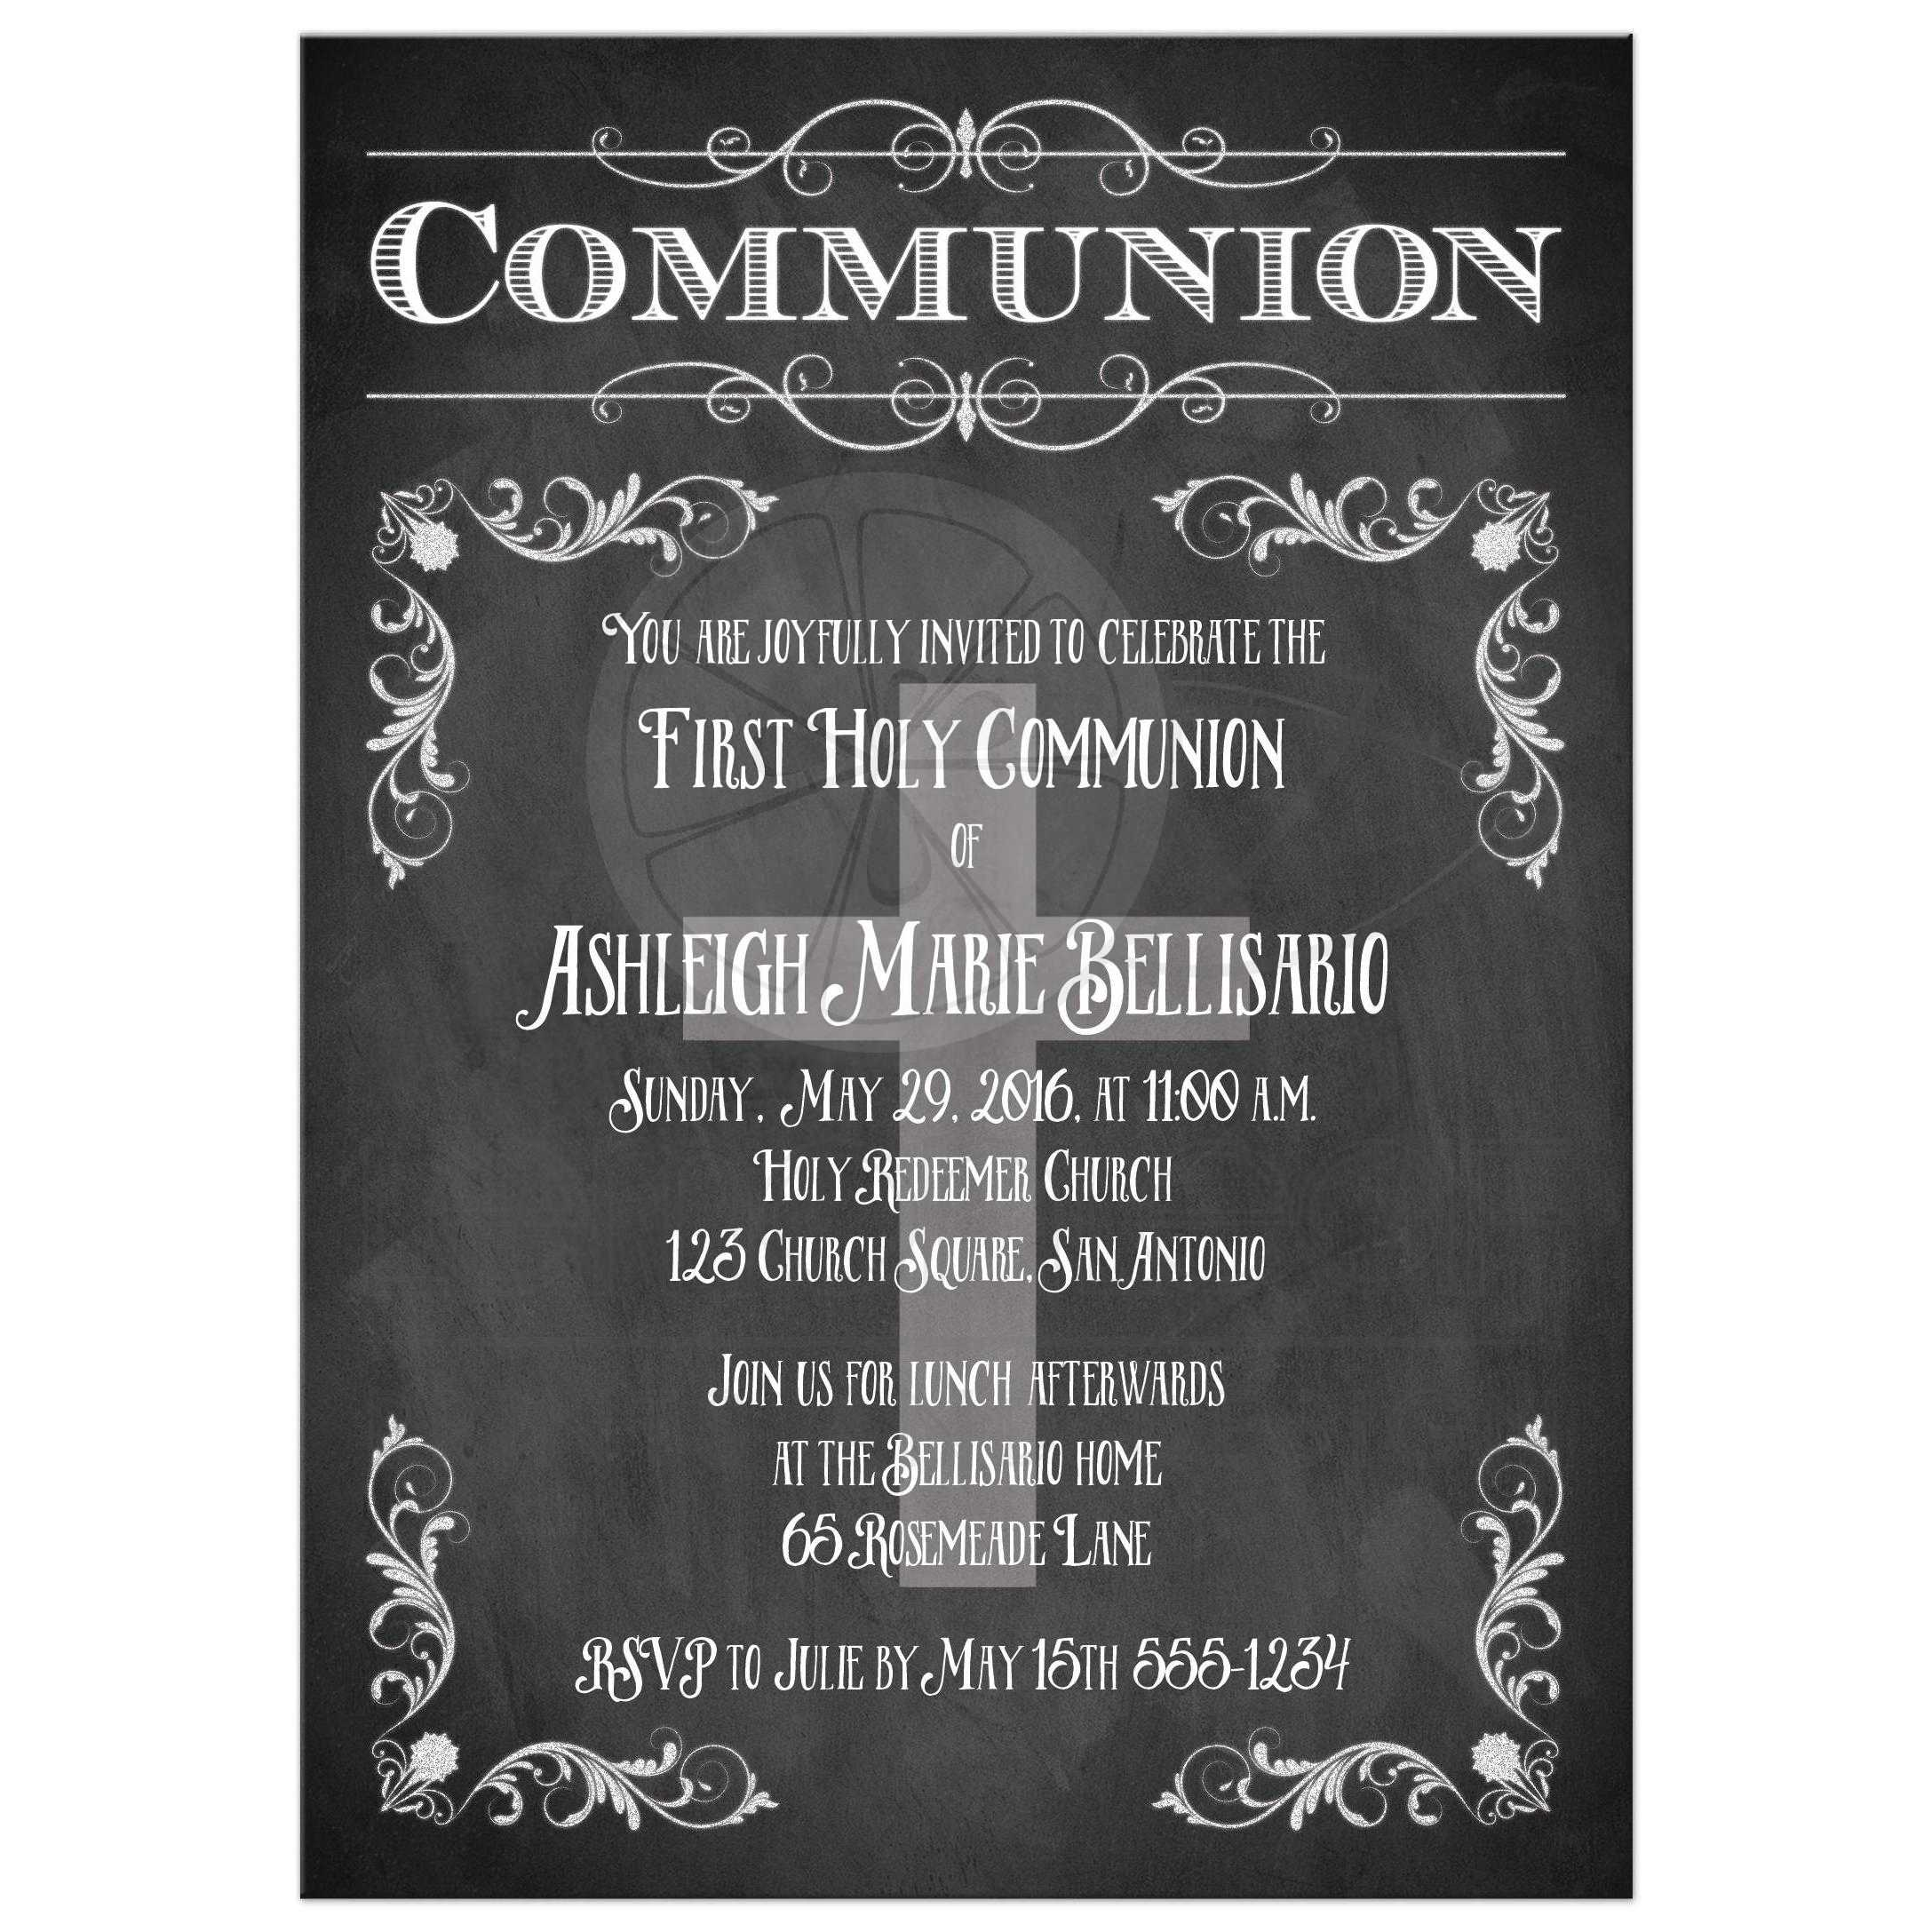 First Holy Communion Invitation Chalkboard Flourishes